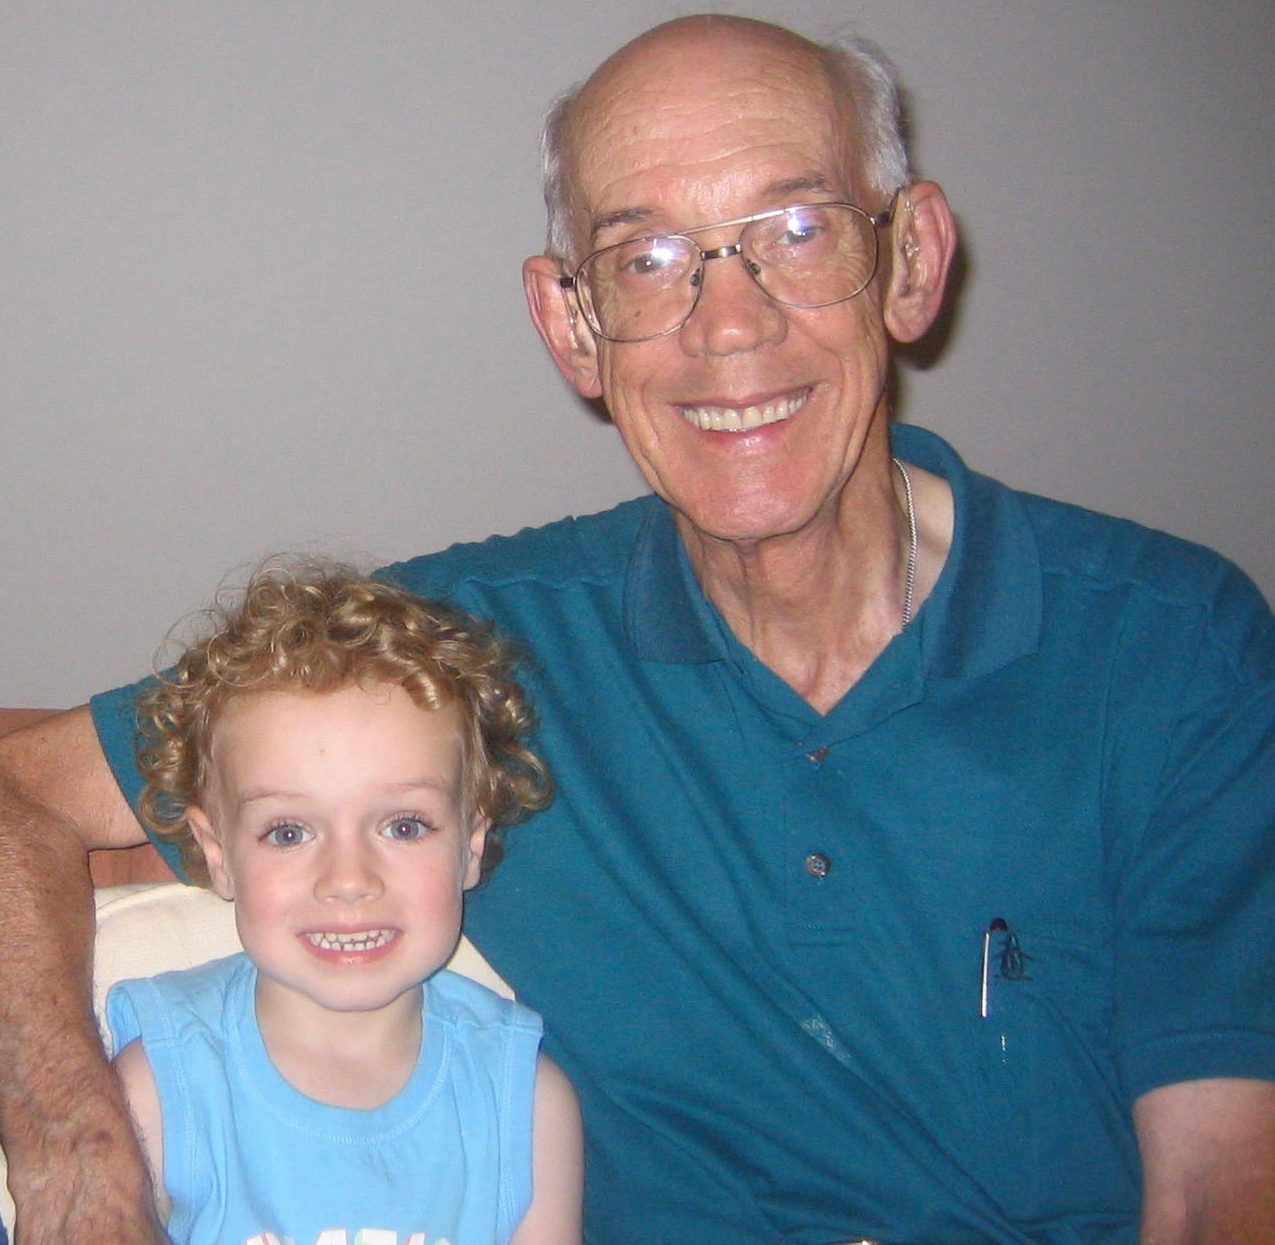 My Dad with my son Levi